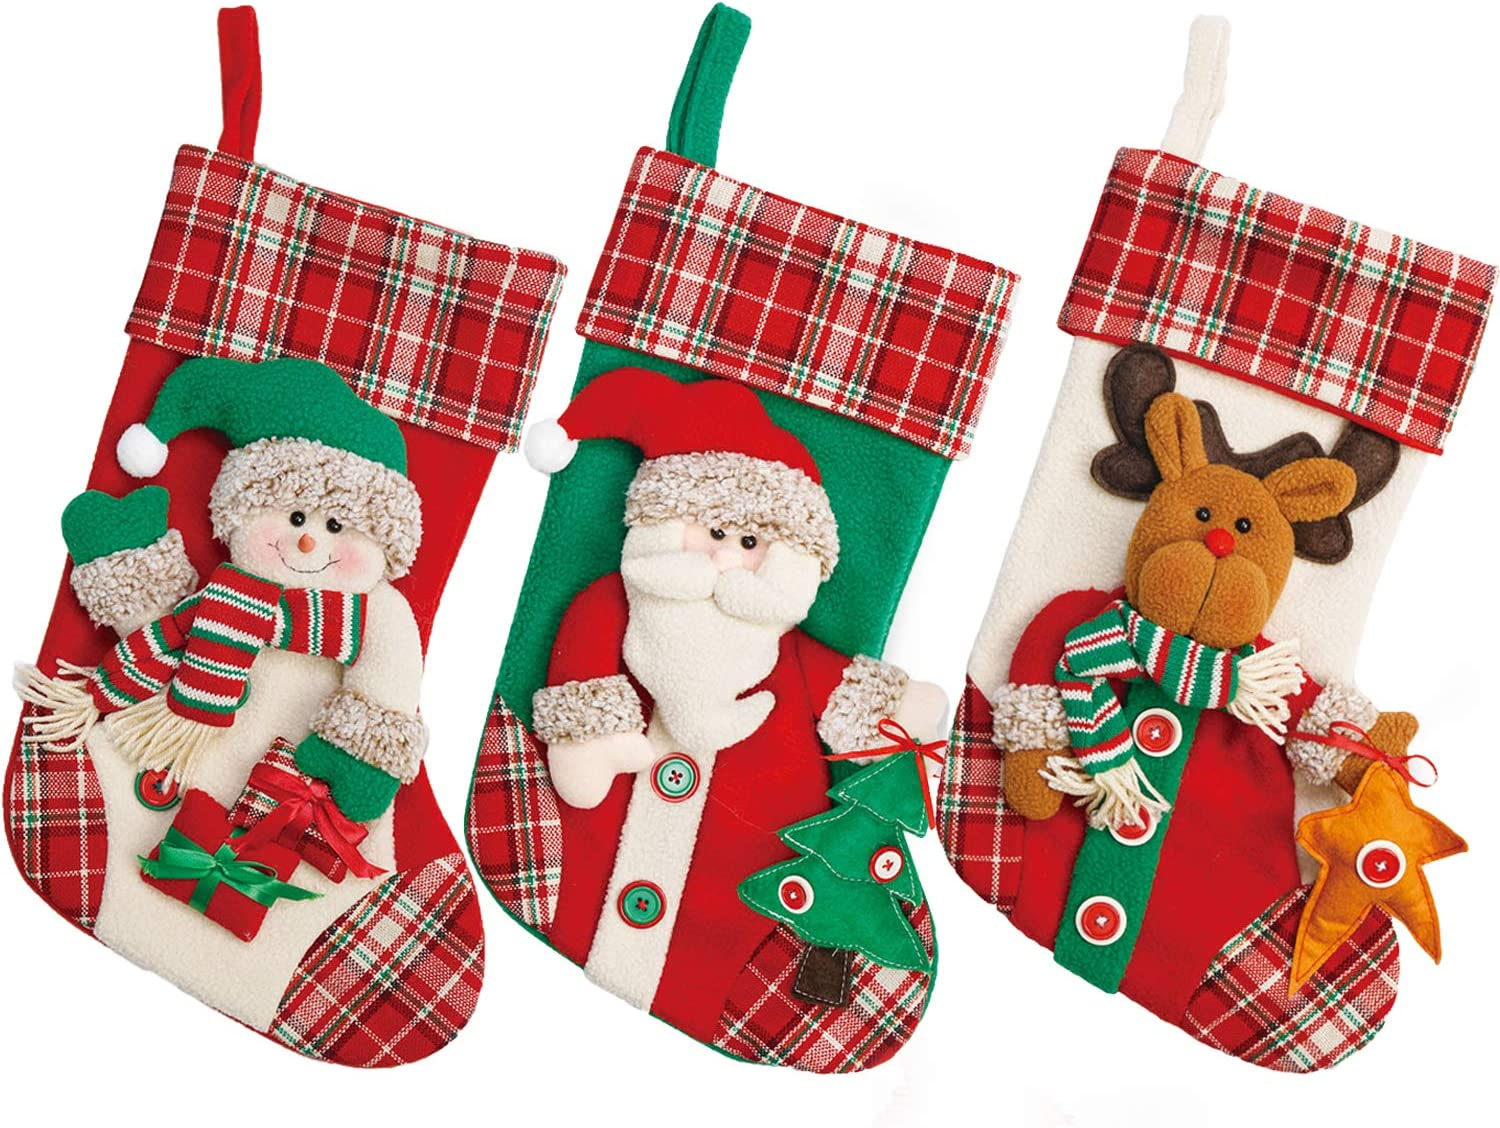 Yecence Animer and Challenge the lowest price of Japan price revision Christmas Stockings Large 3 Pcs Style Set 19